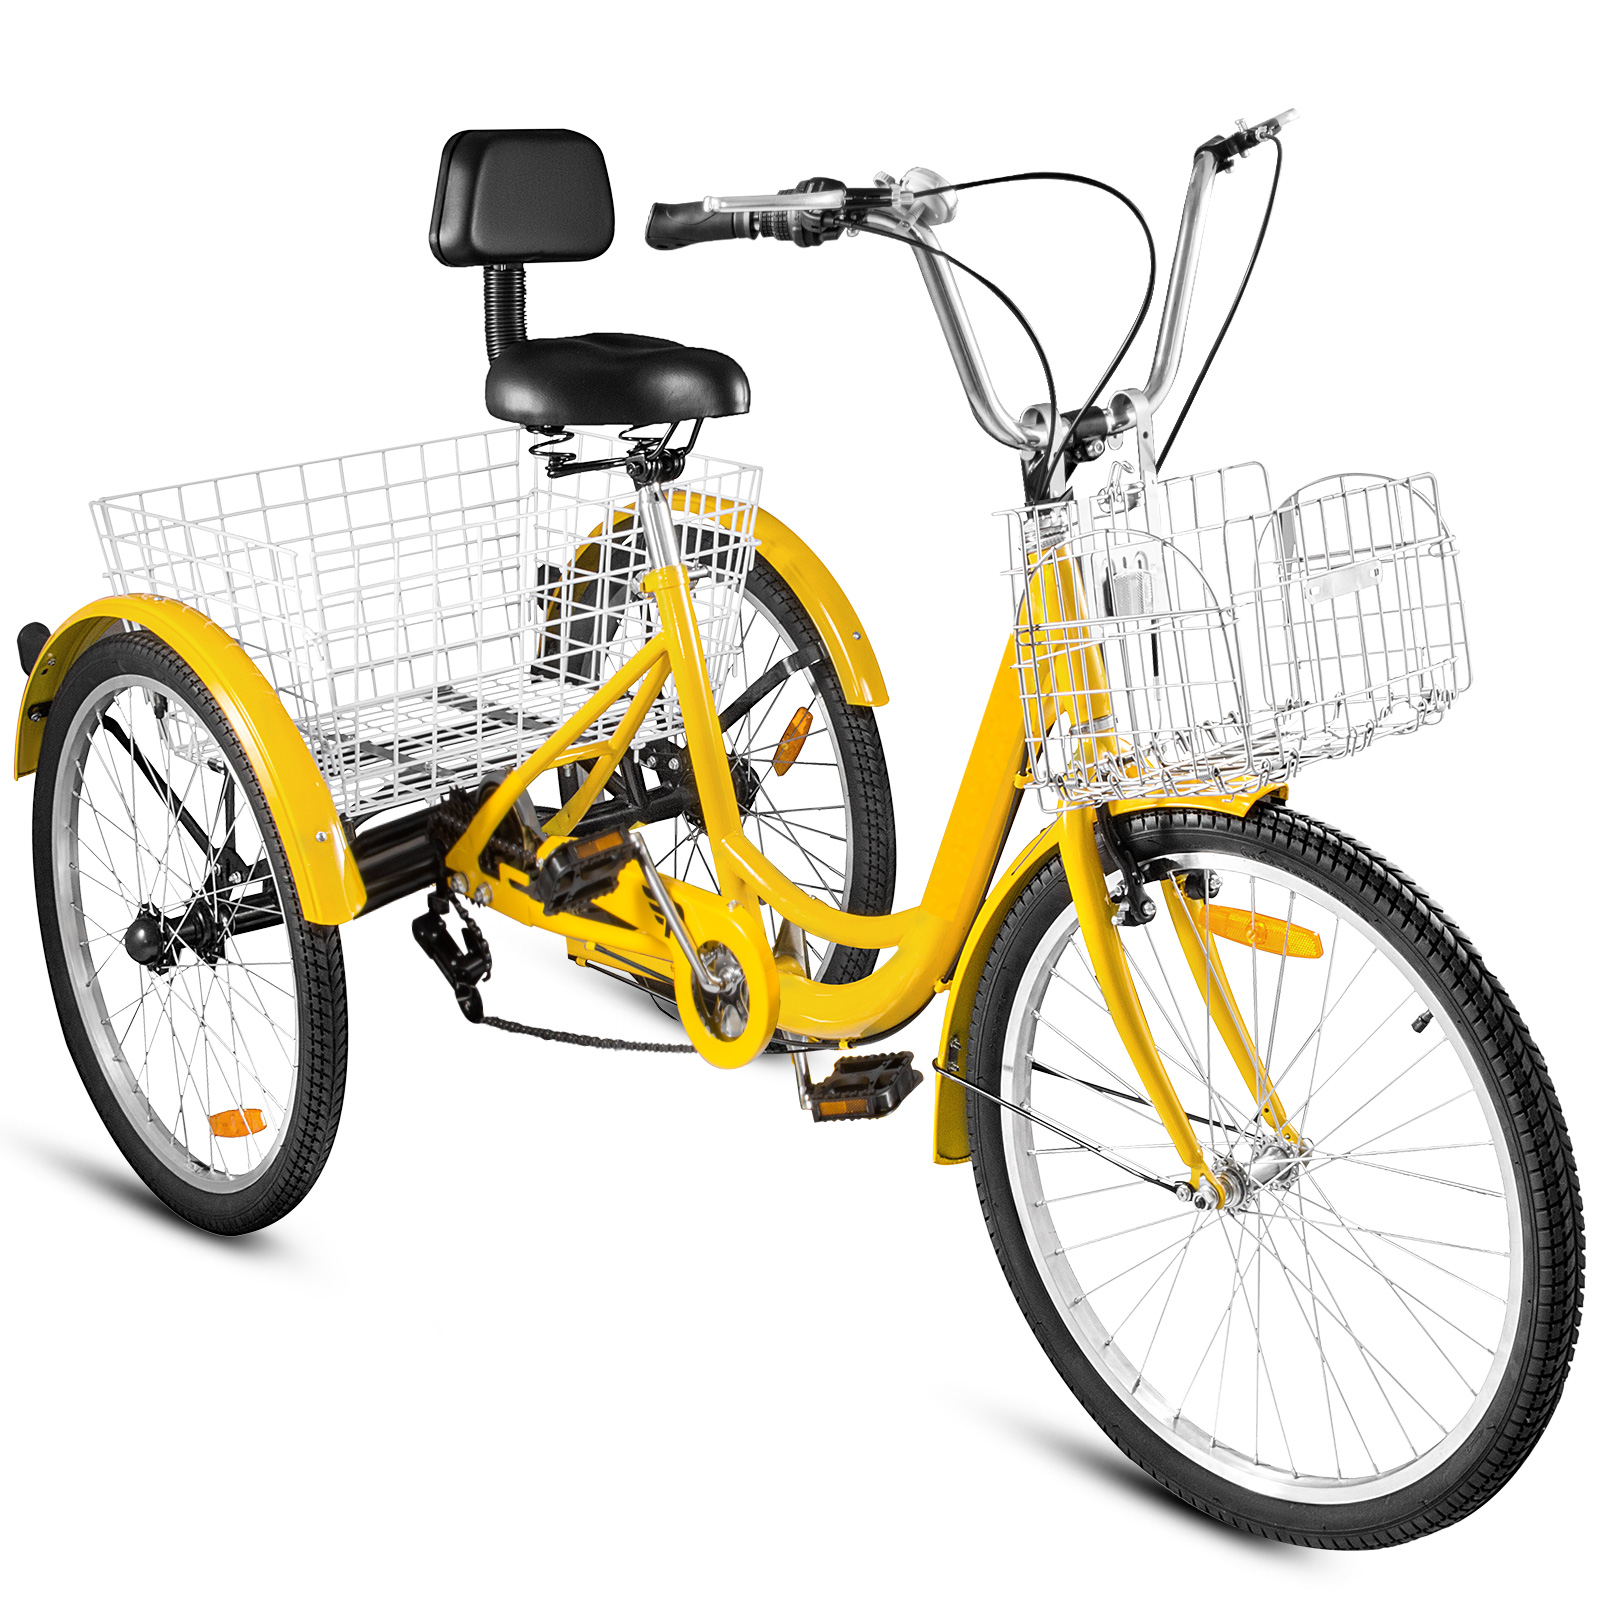 20-24-26-034-Adult-Tricycle-1-7-Speed-3-Wheel-For-Shopping-W-Installation-Tools miniature 381